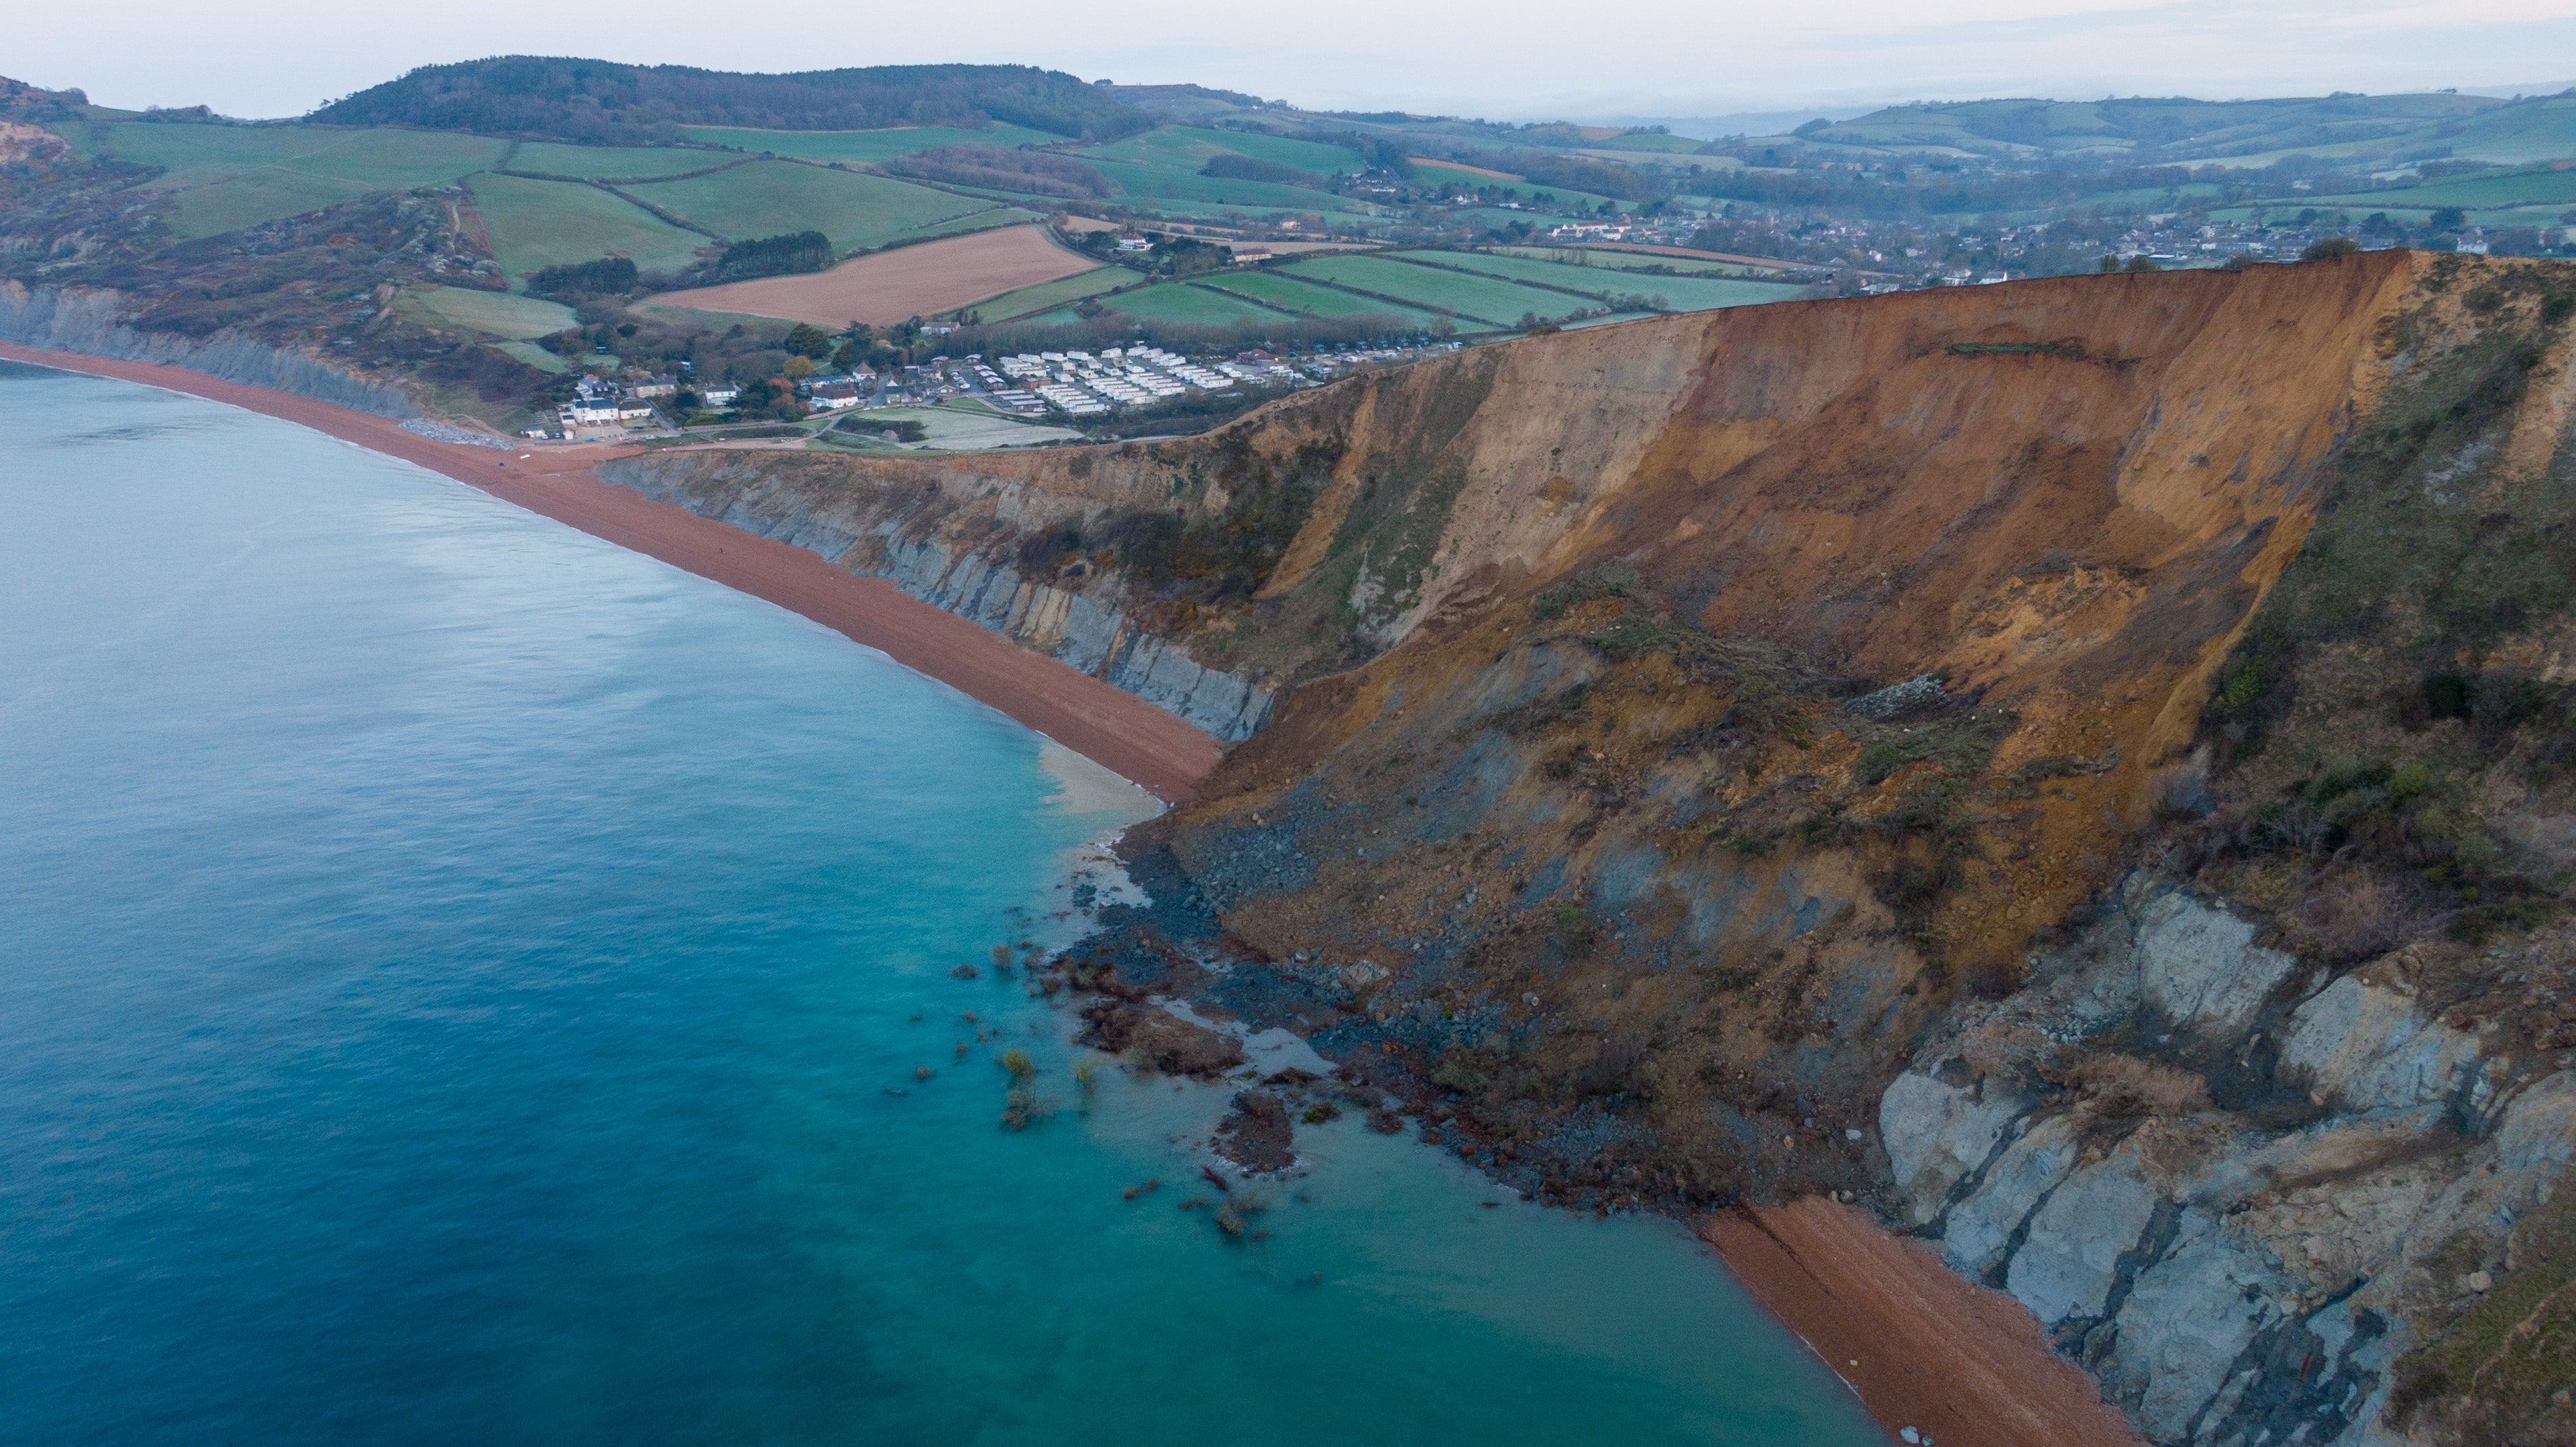 Aerial Photos Show Biggest Cliff Fall in 60 Years in U.K. | The Weather Channel - Articles from The Weather Channel | weather.com